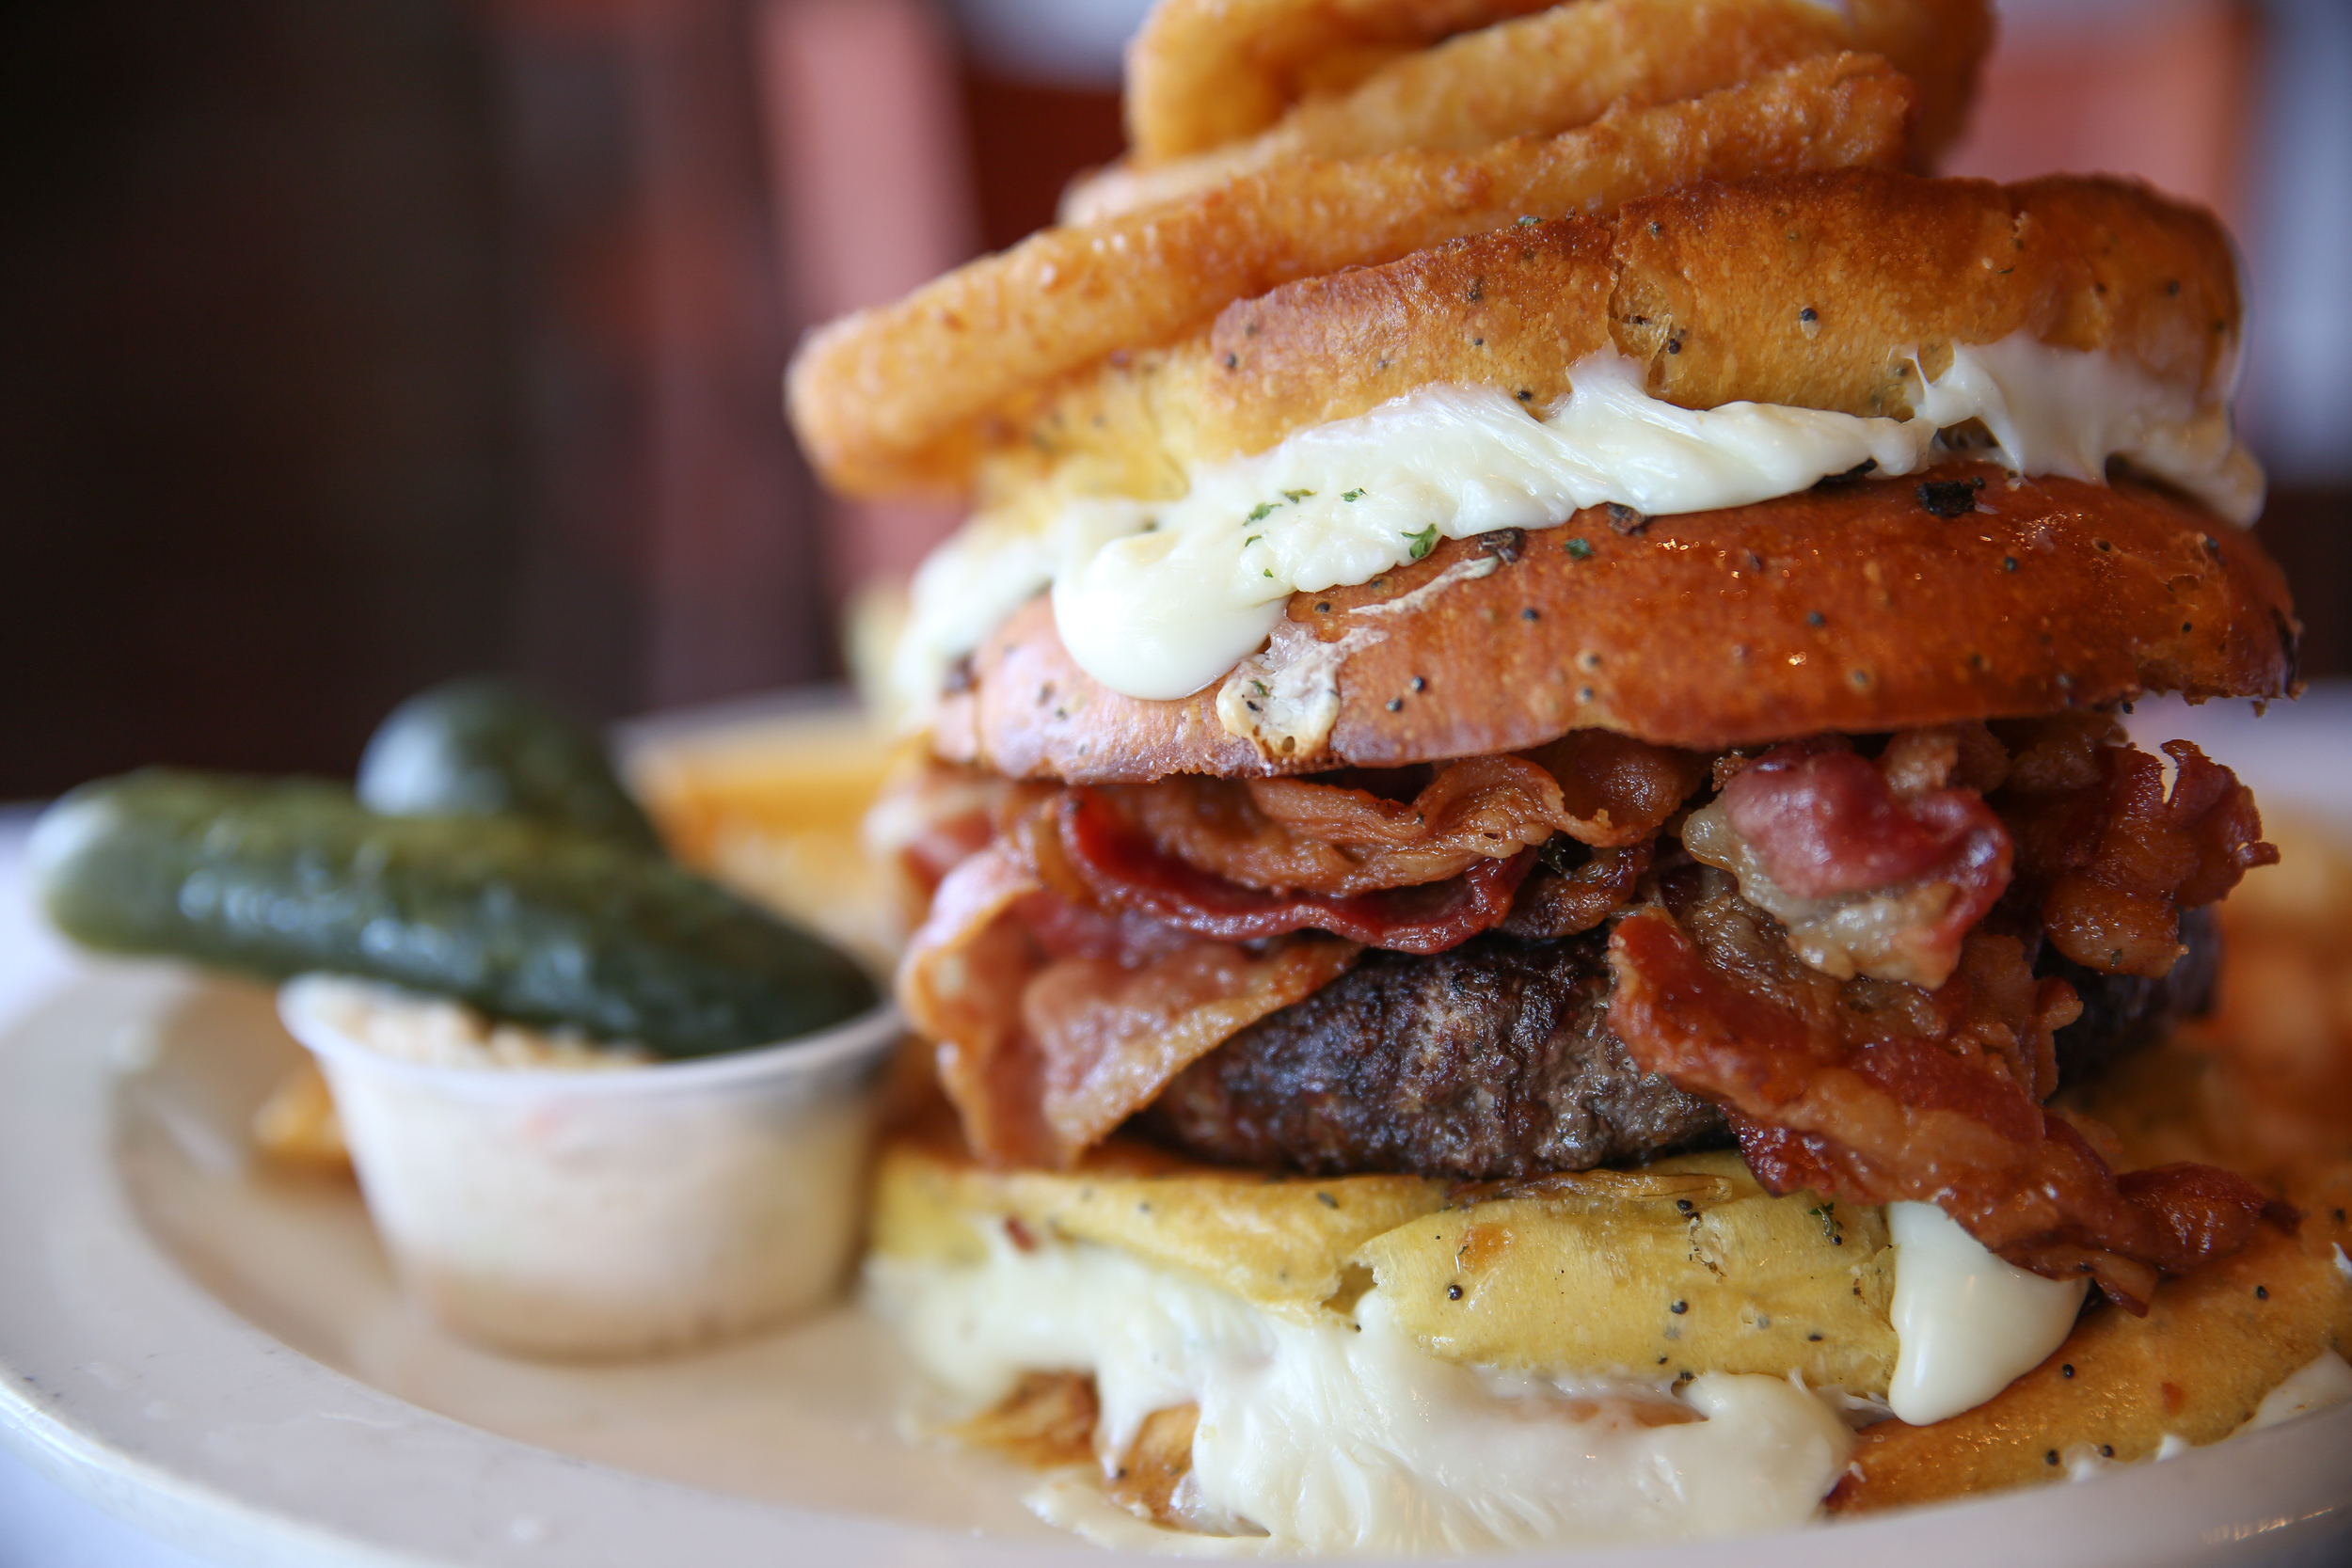 """Chef Frank calls the The Bacon Belly Buster burger a """"challenge,"""" boasting two Texas toast grilled cheese sandwiches instead of buns, surrounding a beef burger with bacon."""